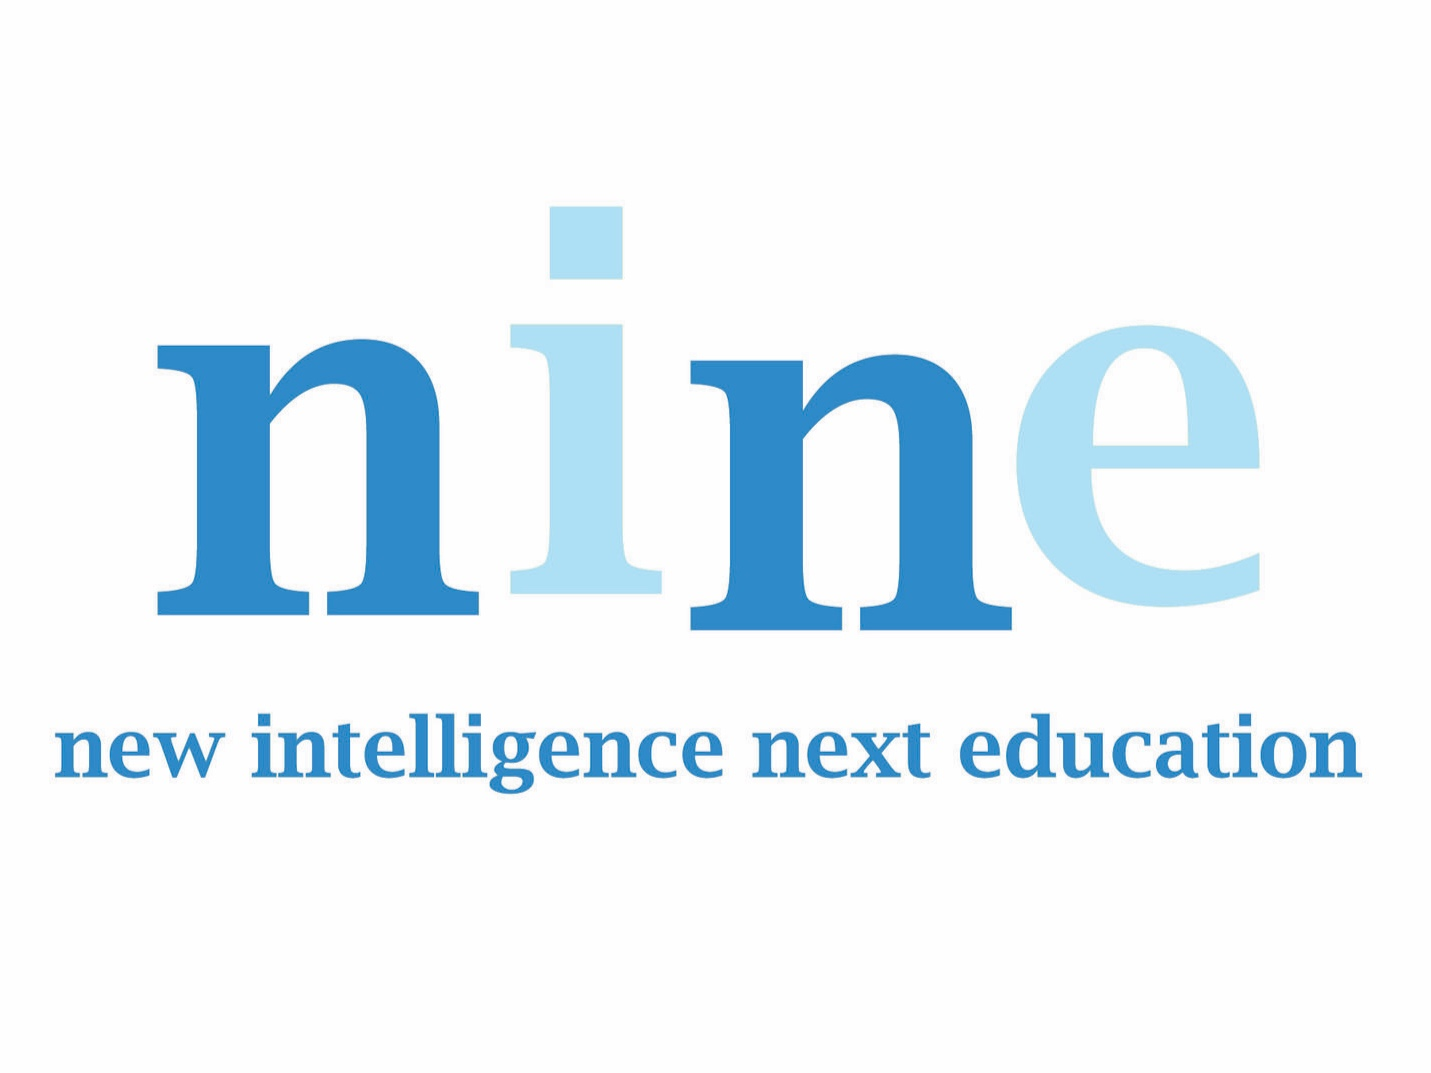 New Intelligence Next Education